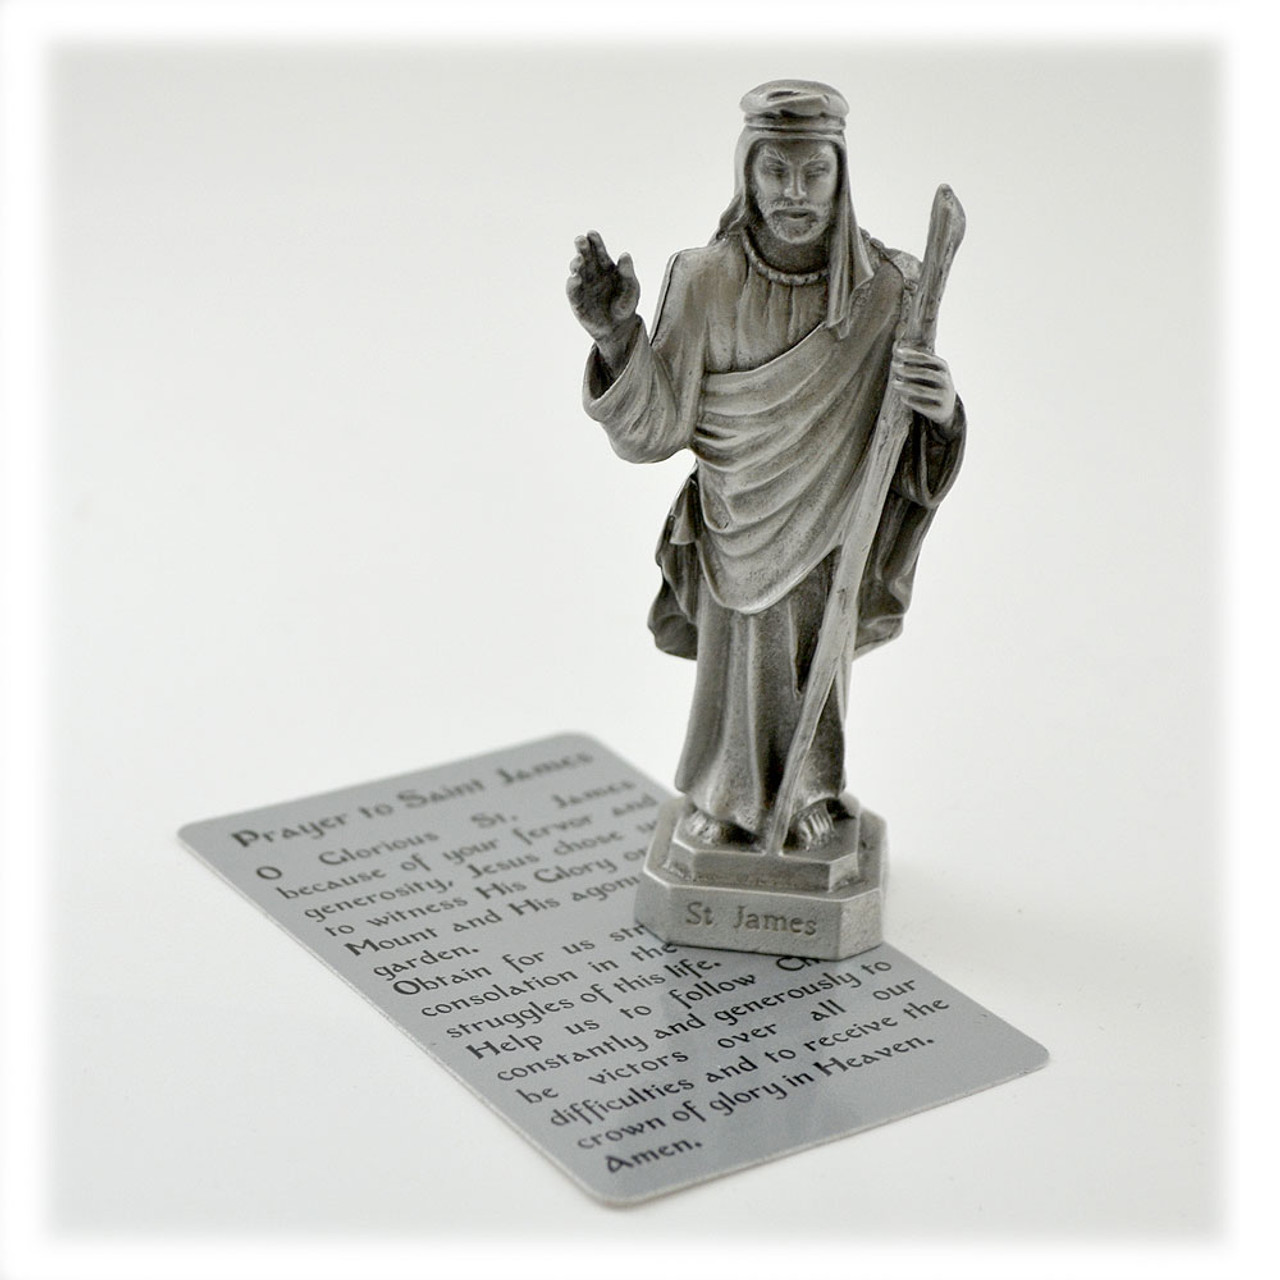 St. James 3.5IN Pewter Statue